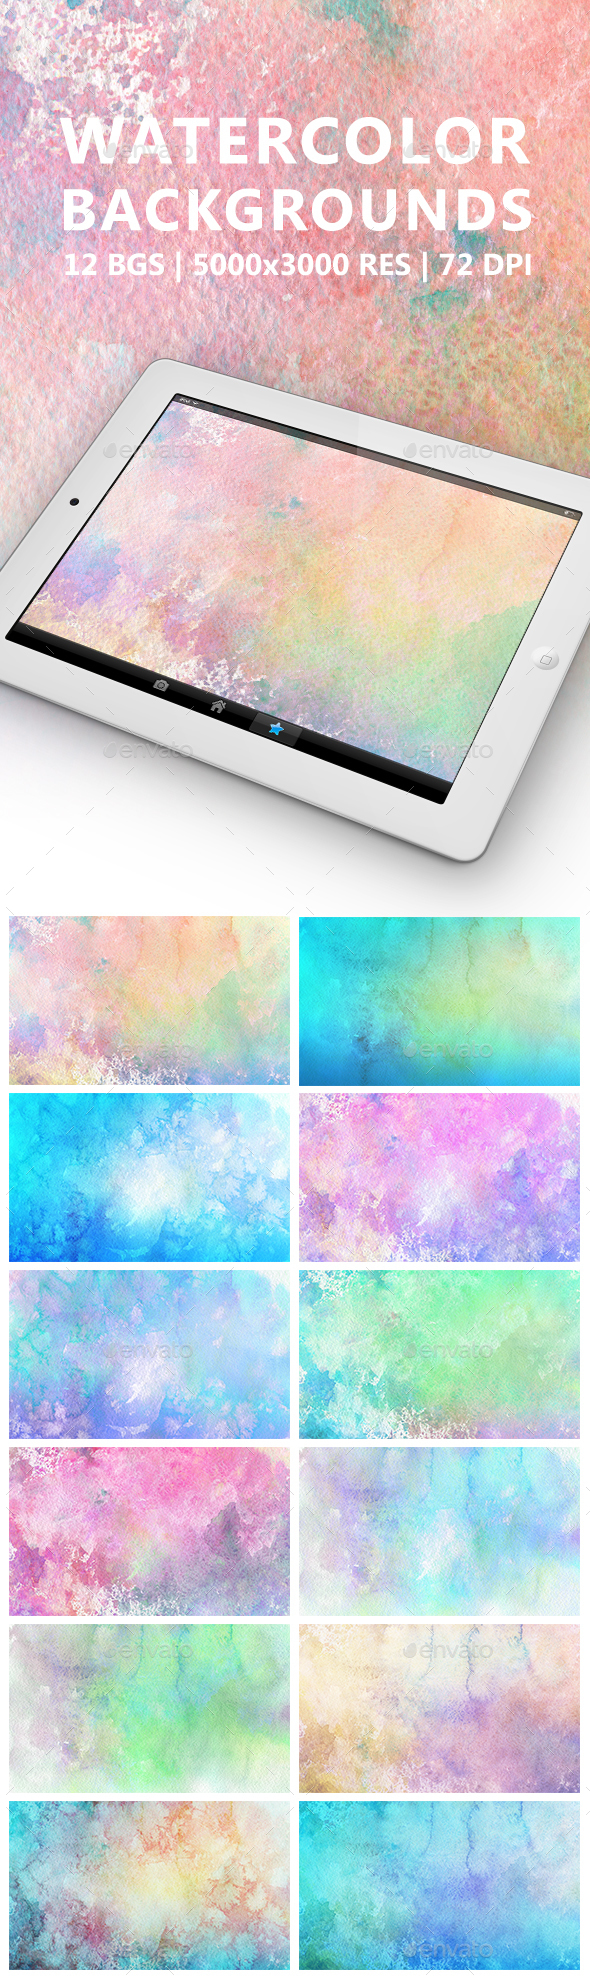 Watercolor Backgrounds - Abstract Backgrounds